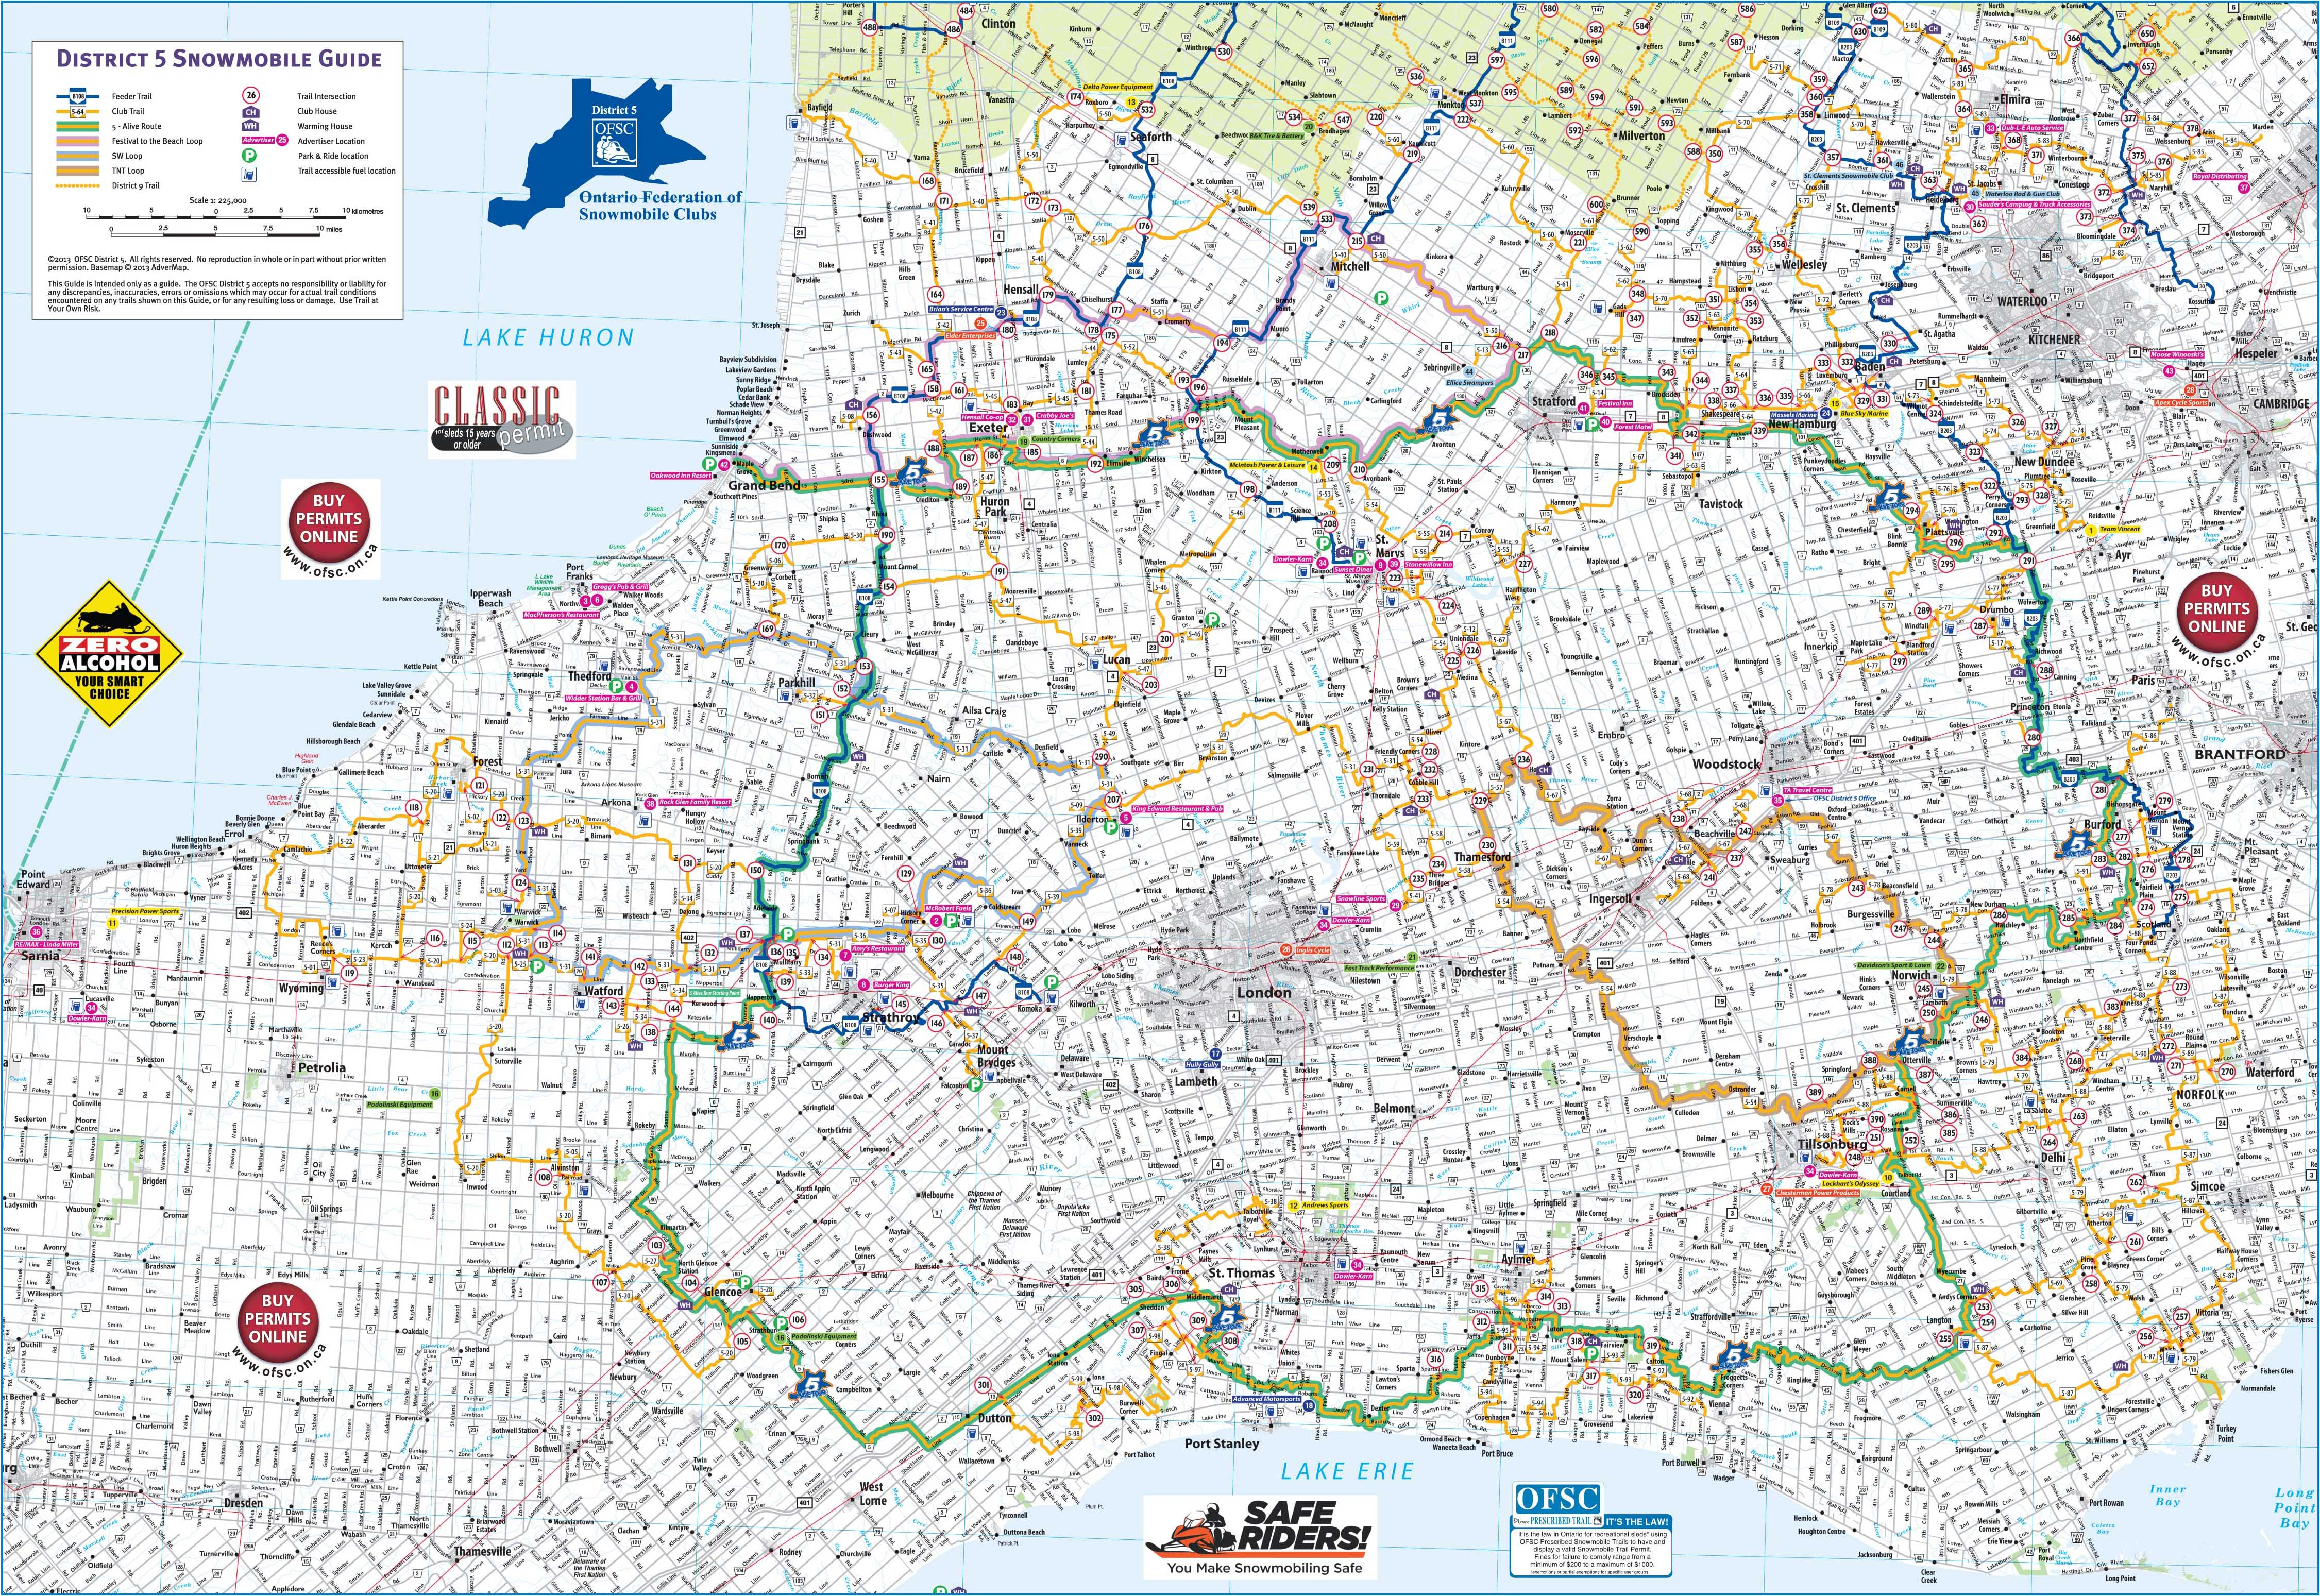 ontario snowmobile map with Trail Guide on Snowmobiling also Voyageur Multi Use Trail System Vmuts likewise Cottage Country Home Mortgage in addition Larry Berrio Ontario Snowmobile Trails And Triumphs In Timmins also Brucepeninsula.